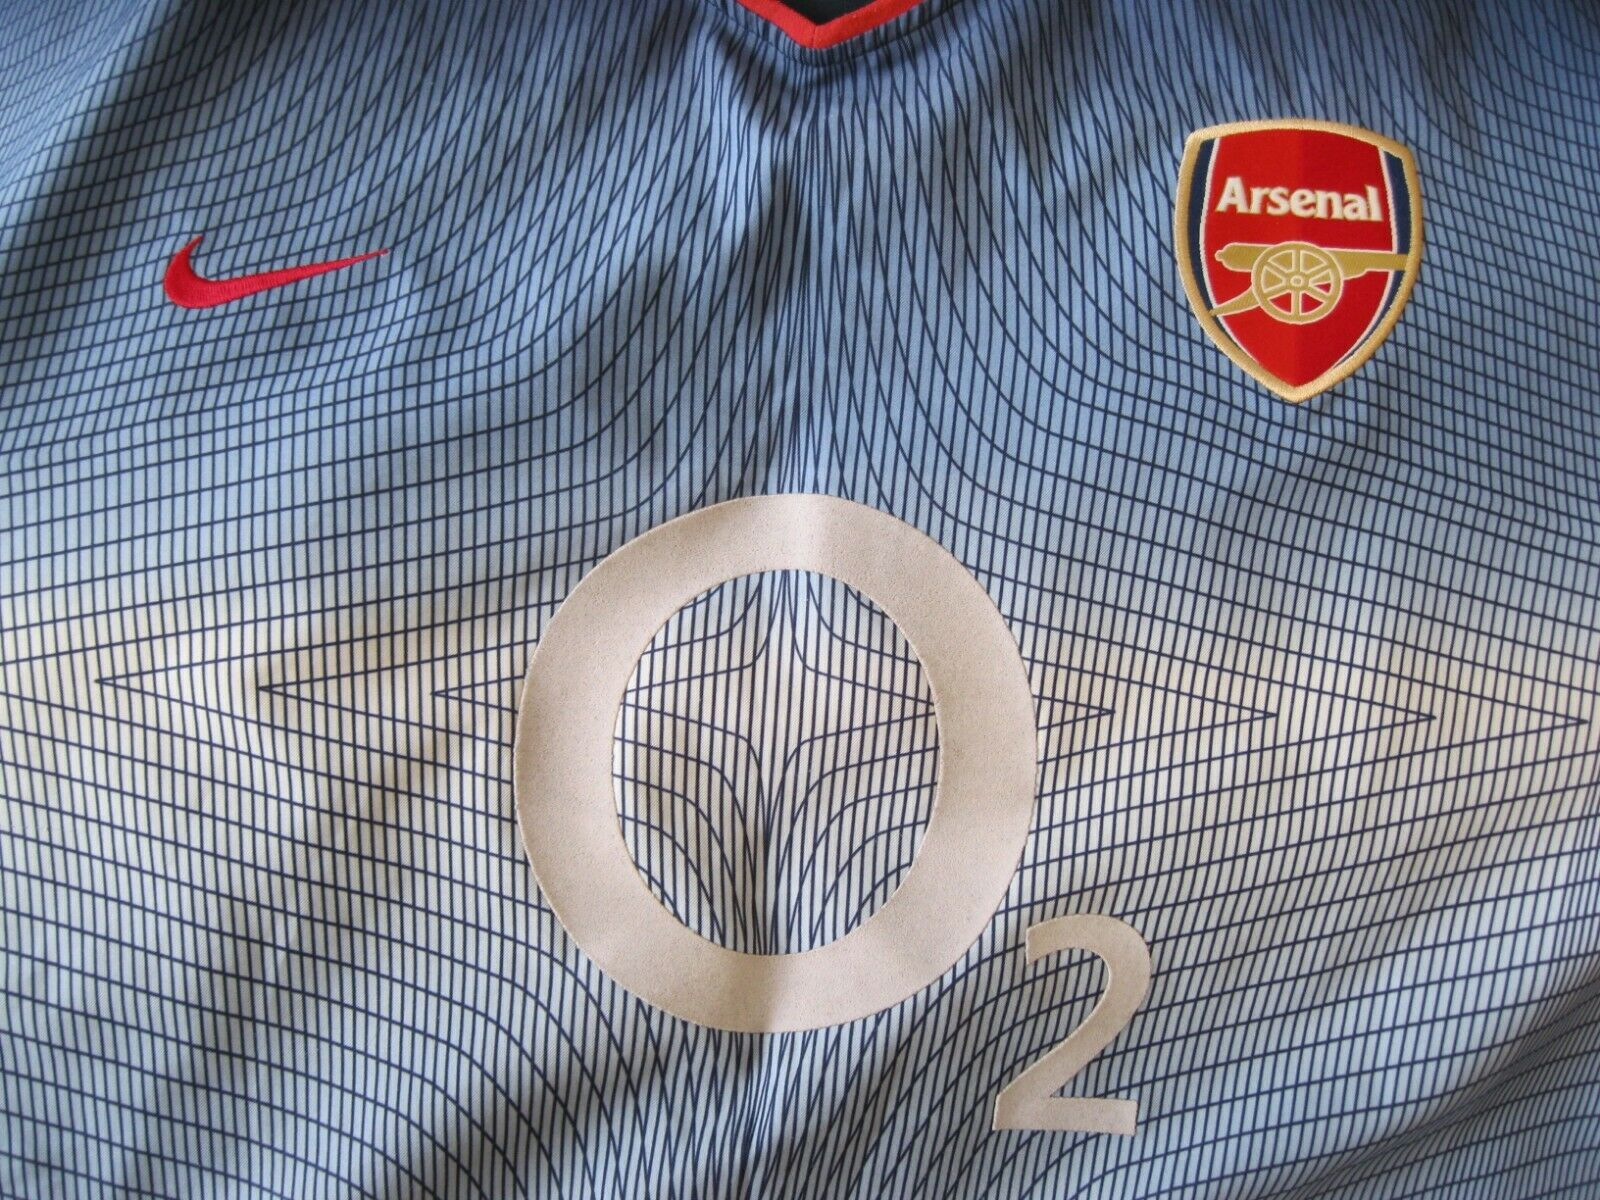 Arsenal London #4 Vieira 2002/2003 Away 2XL Nike jersey